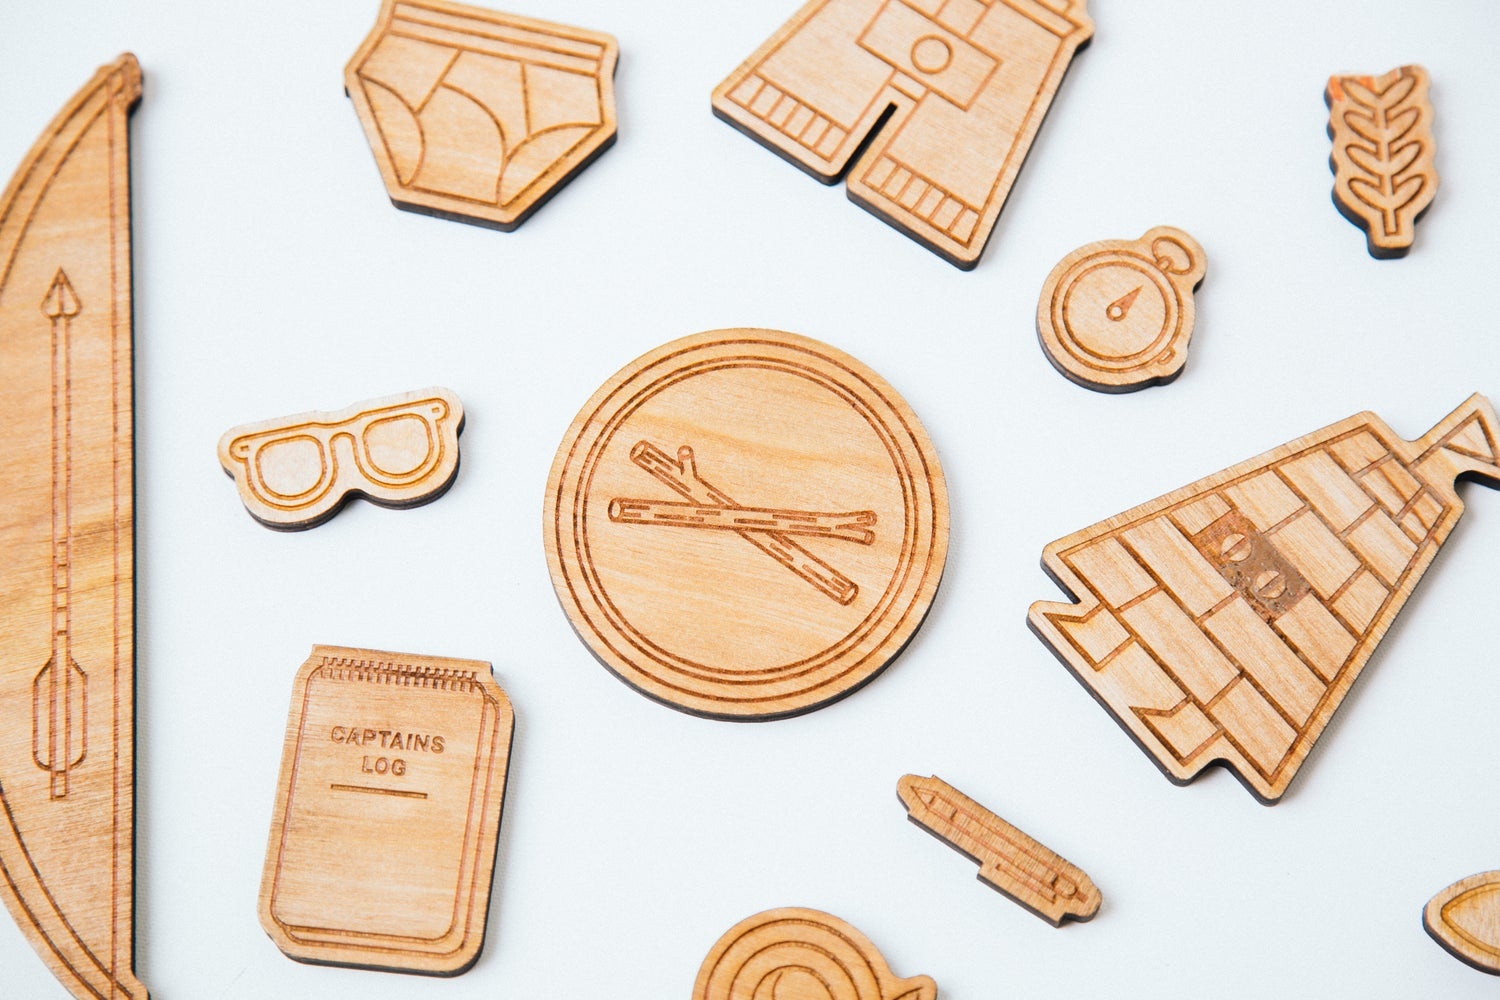 Image of Wooden Puzzle